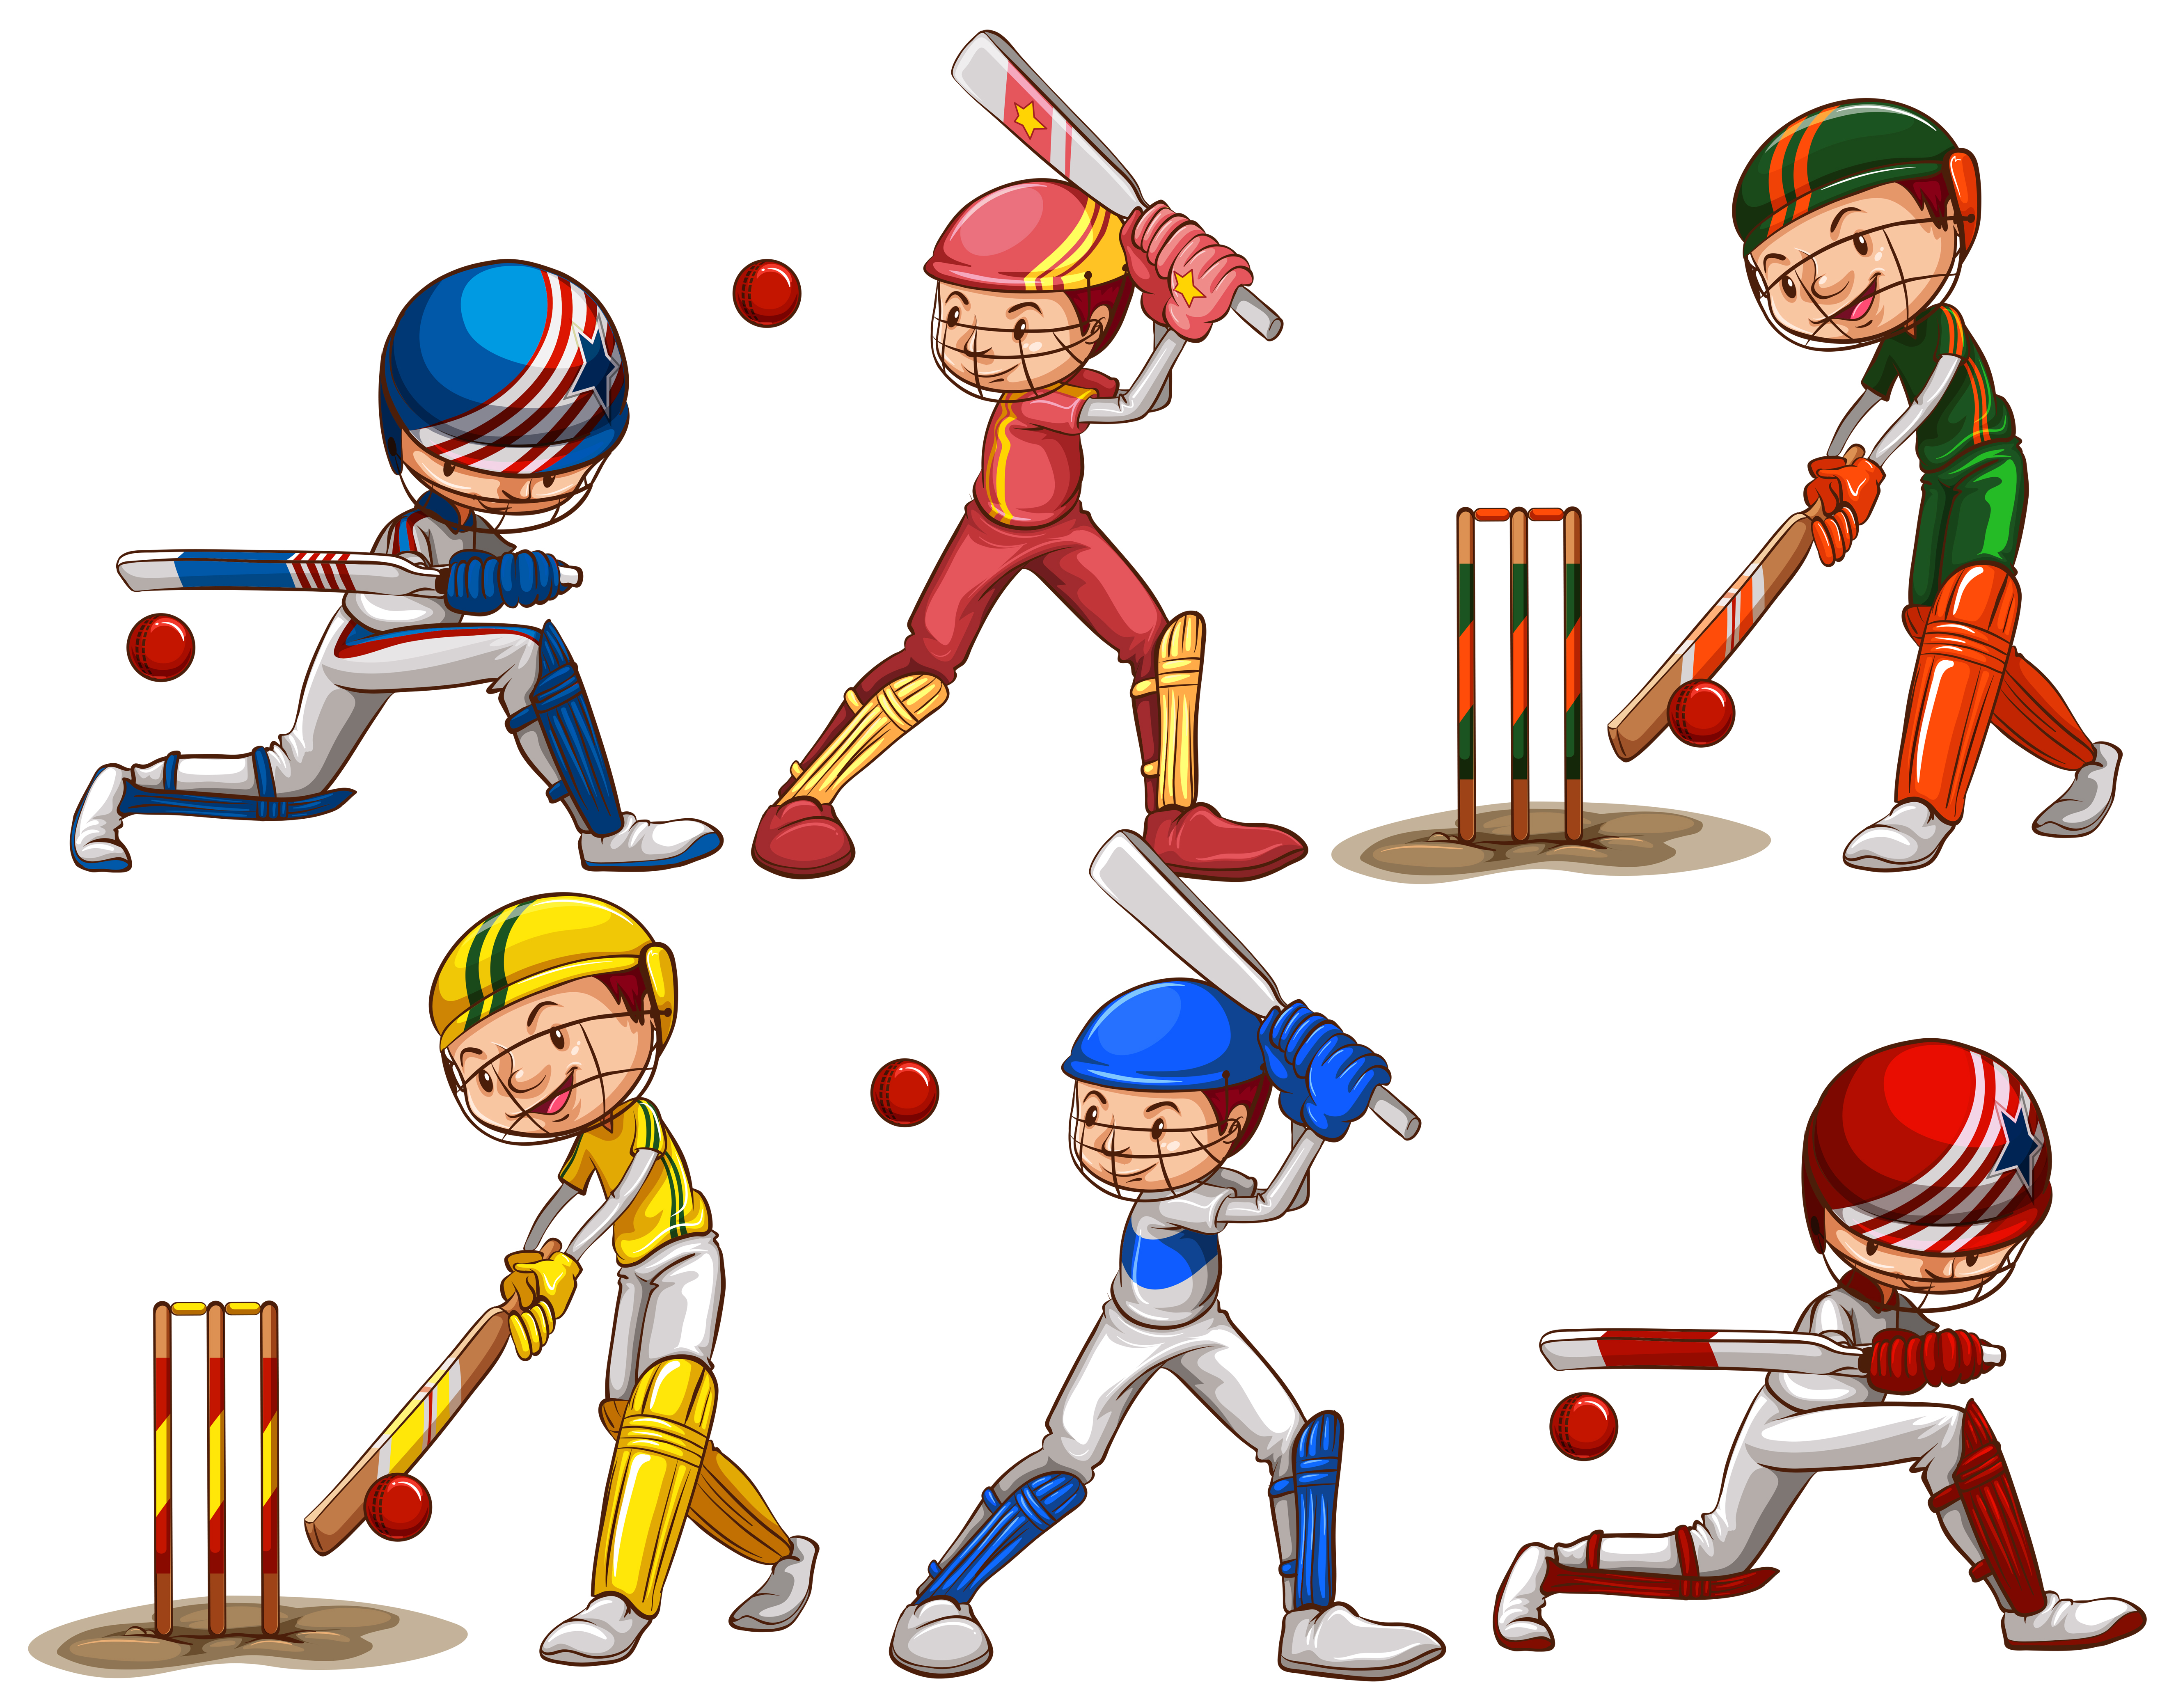 People playing cricket - Download Free Vectors, Clipart ...